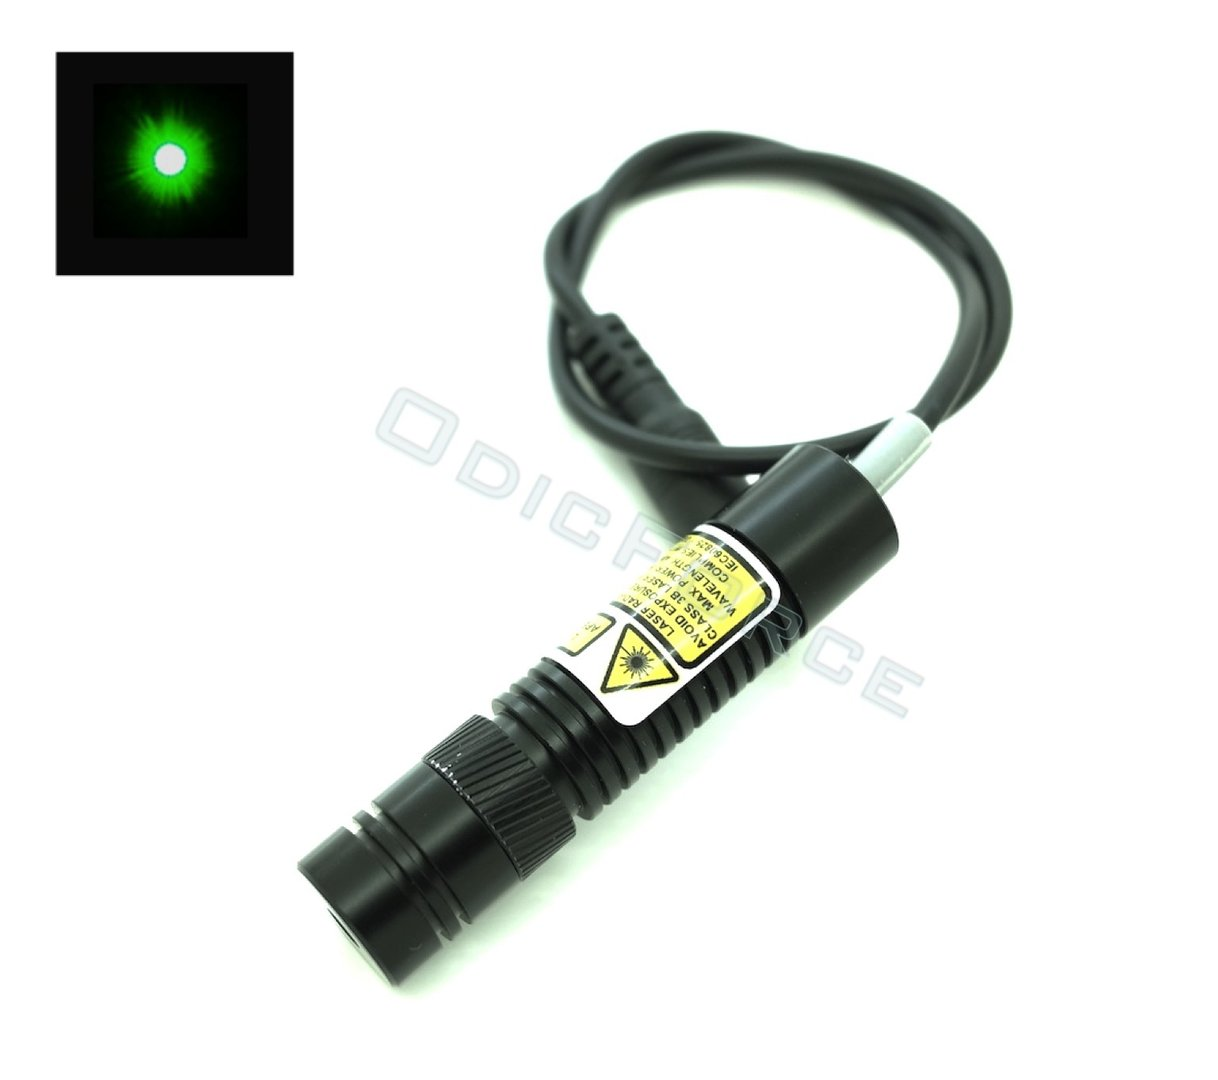 20mW Green (520nm) Locking Focus Direct Diode Laser Module Dot Pattern (16mm, 3-5V)